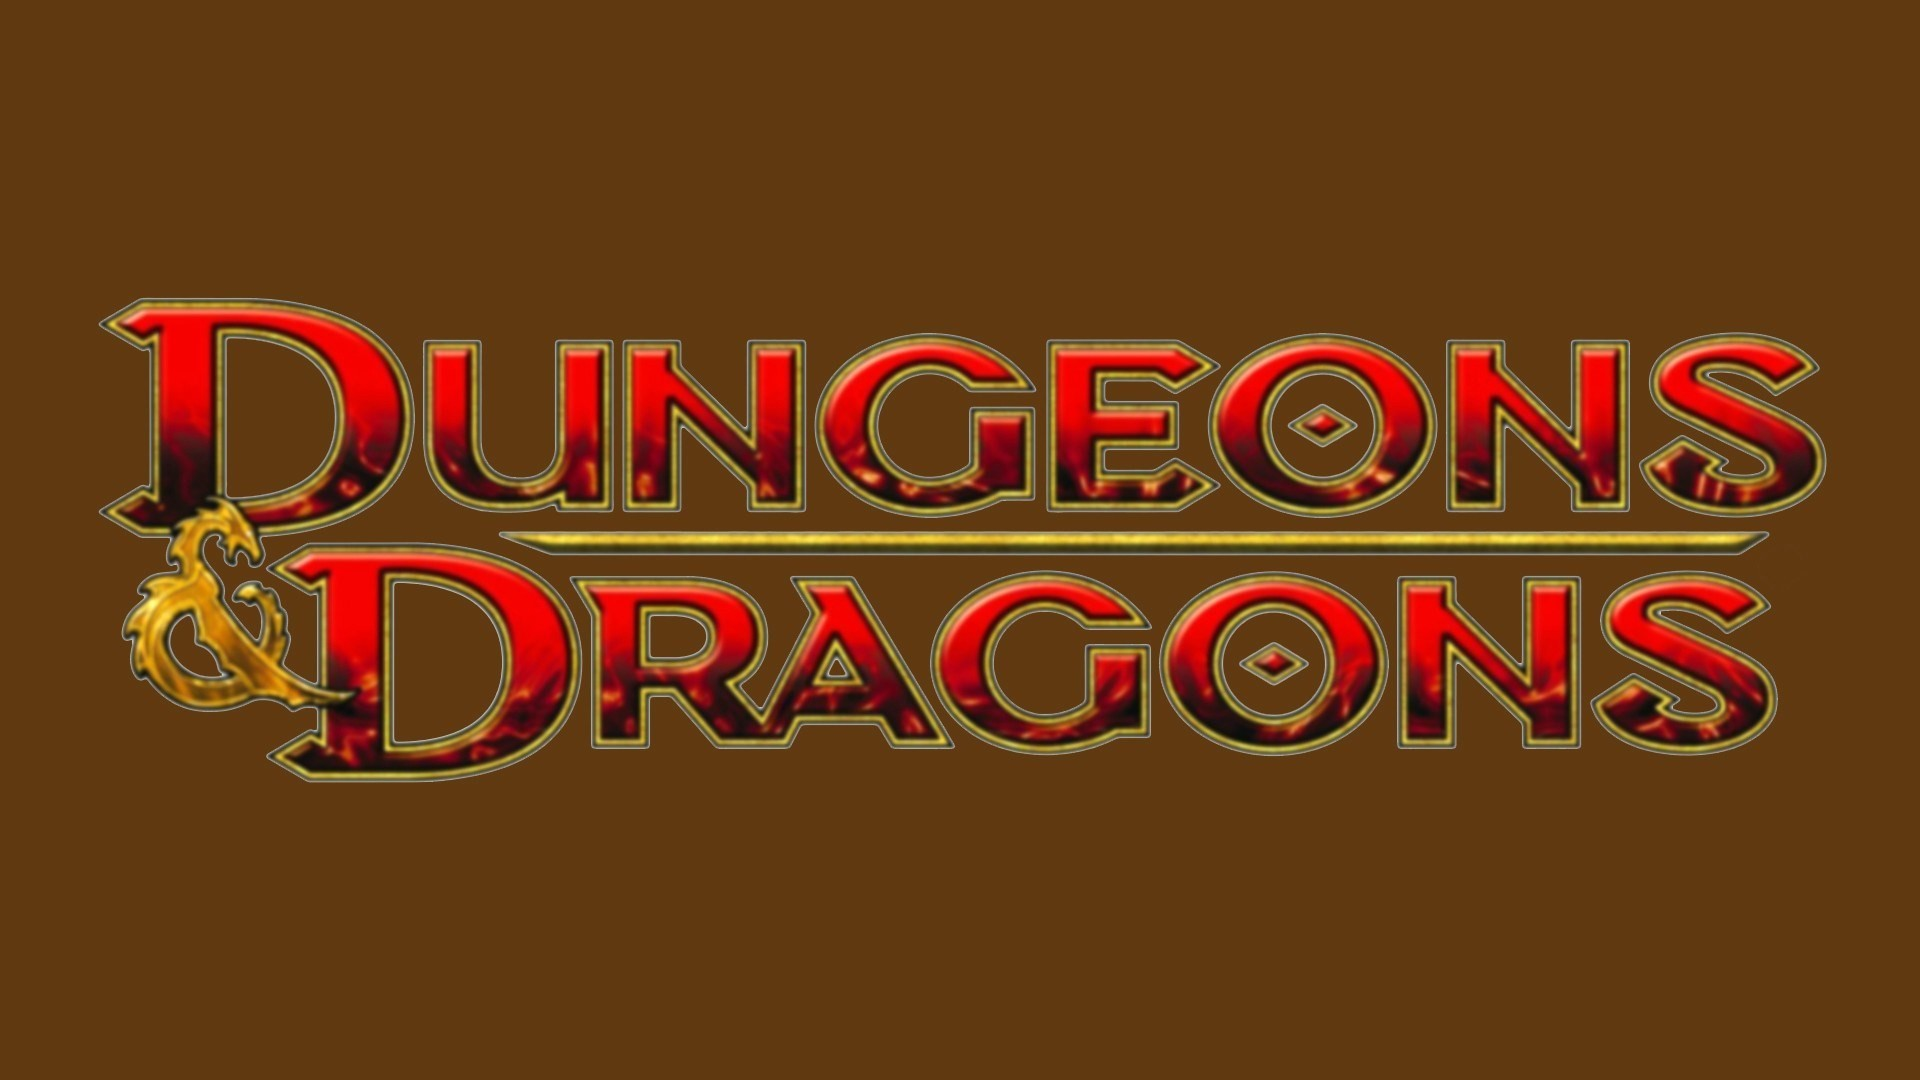 px Best dungeons and dragons pic by Deacon Young for :  pocketfullofgrace.com